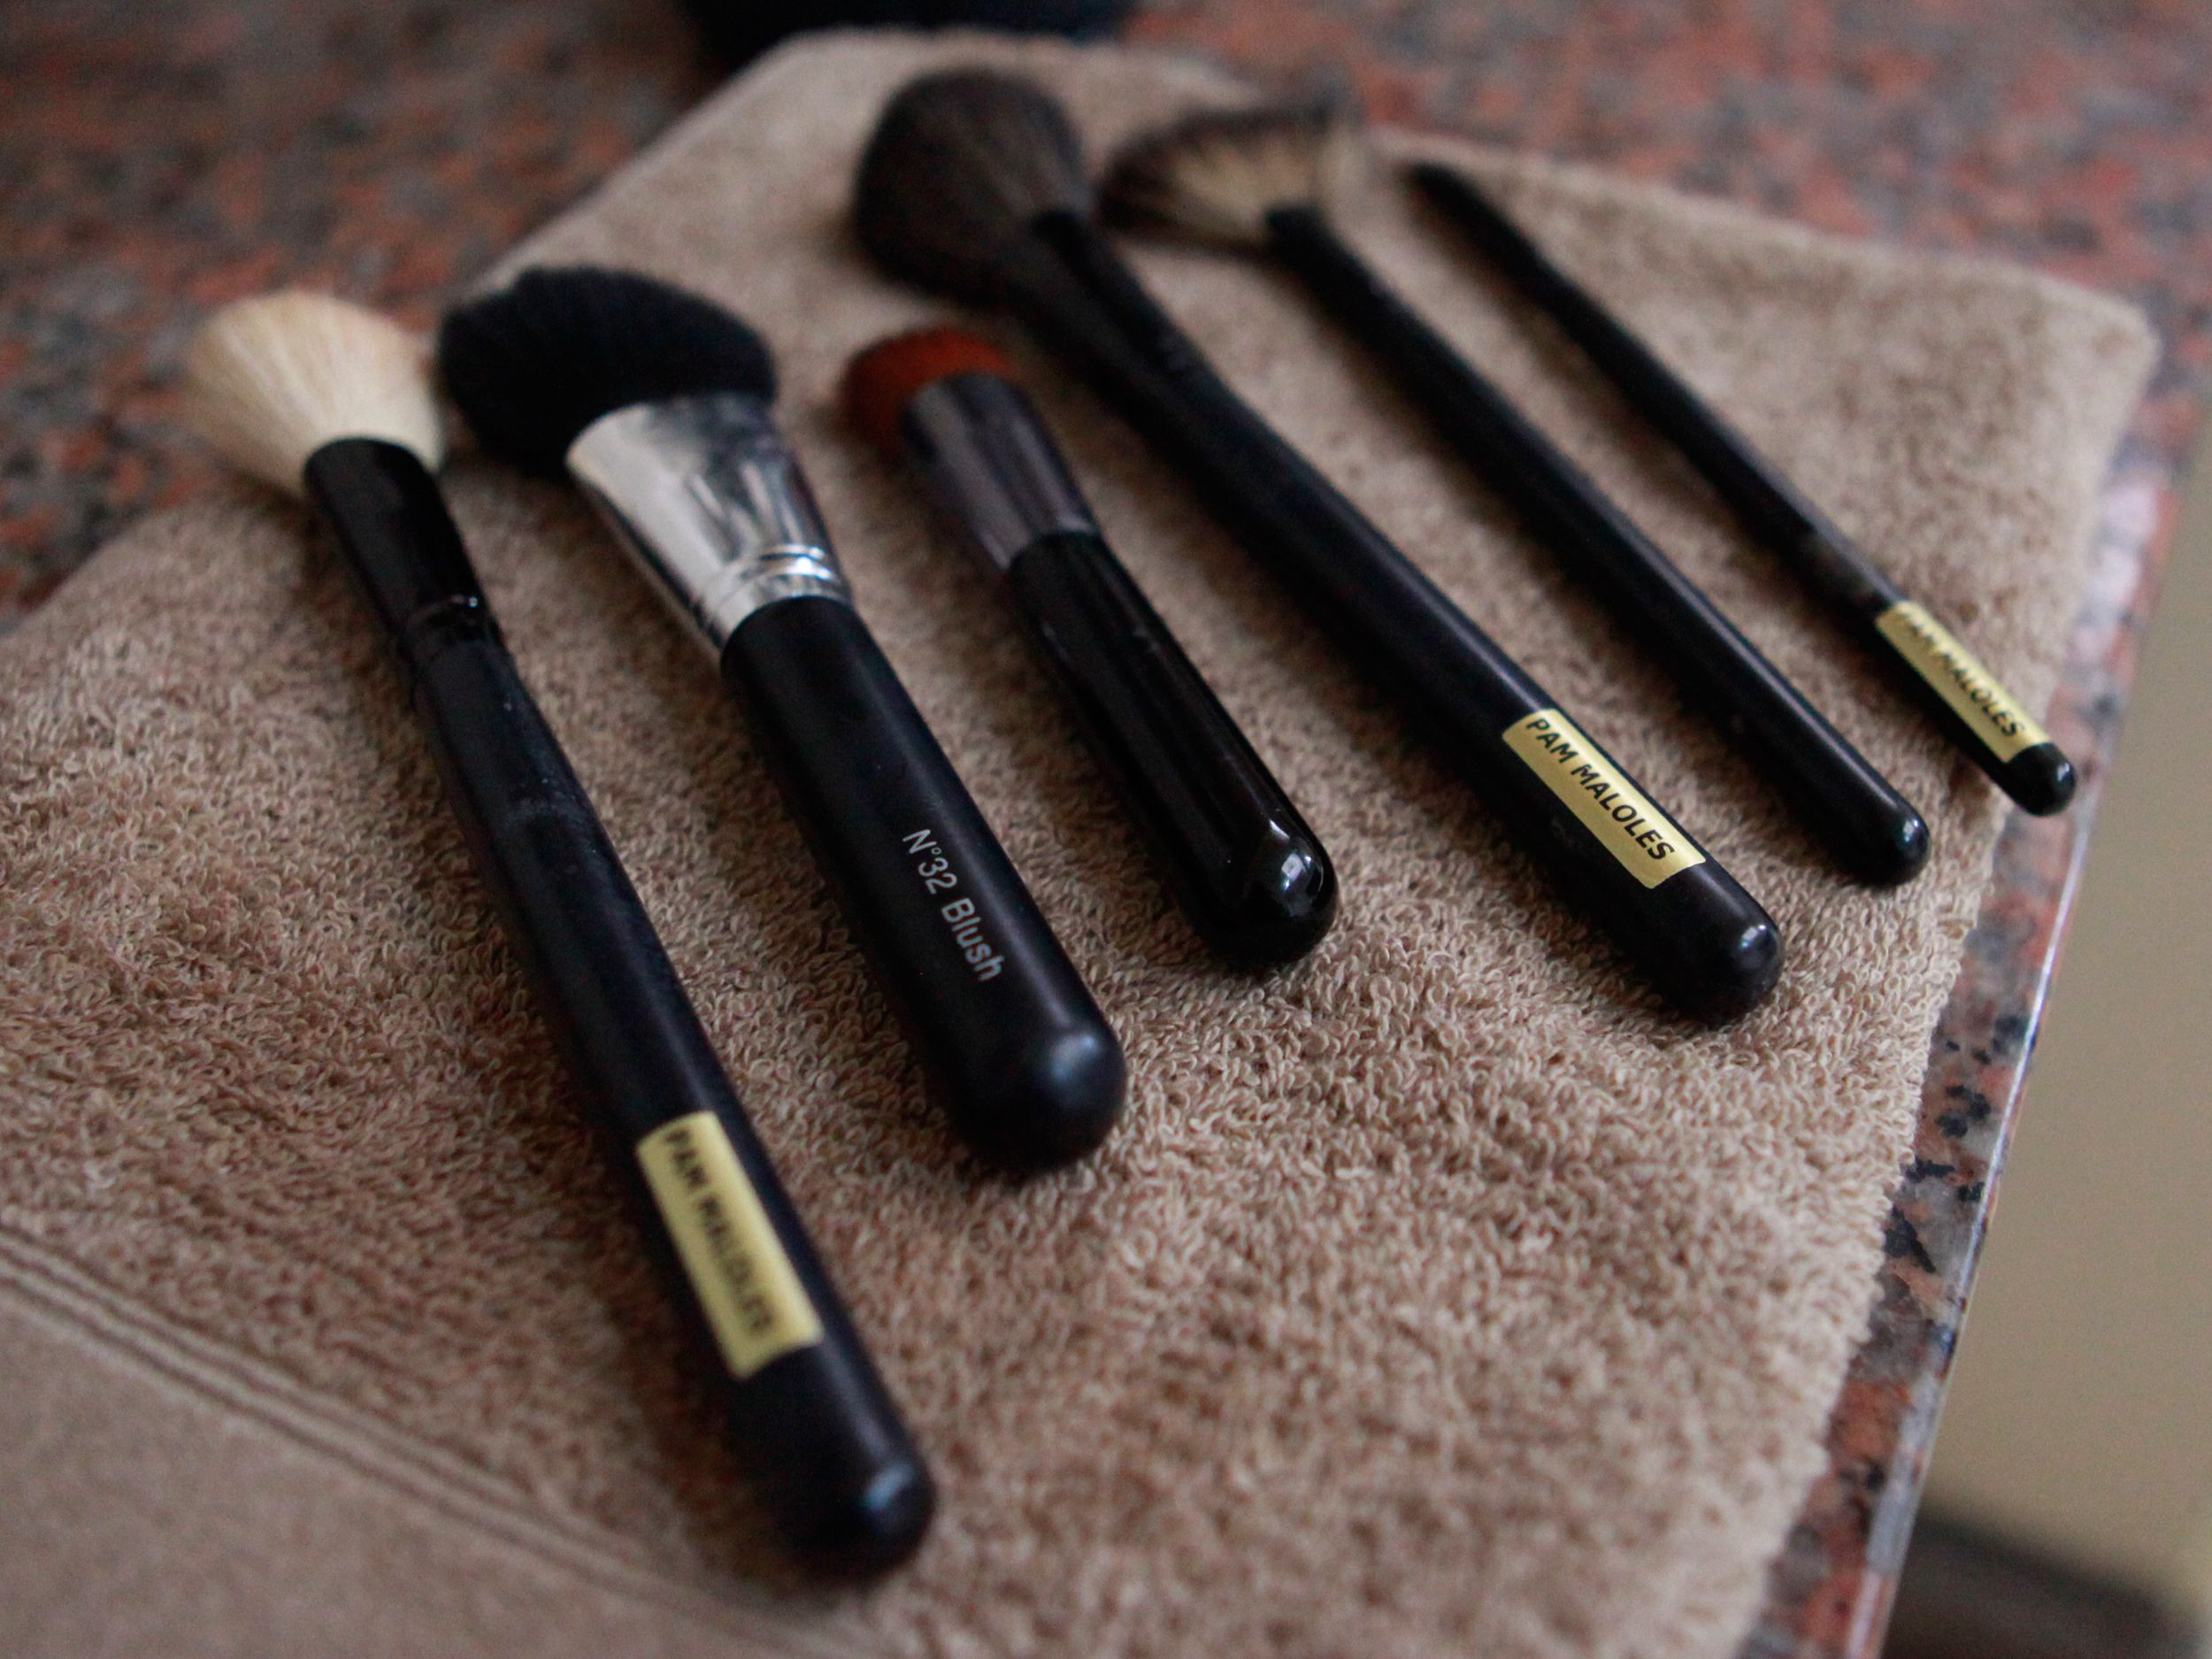 How To Clean Bare Minerals Makeup Brushes Mineral Makeup Brush Bare Minerals Makeup Minerals Makeup